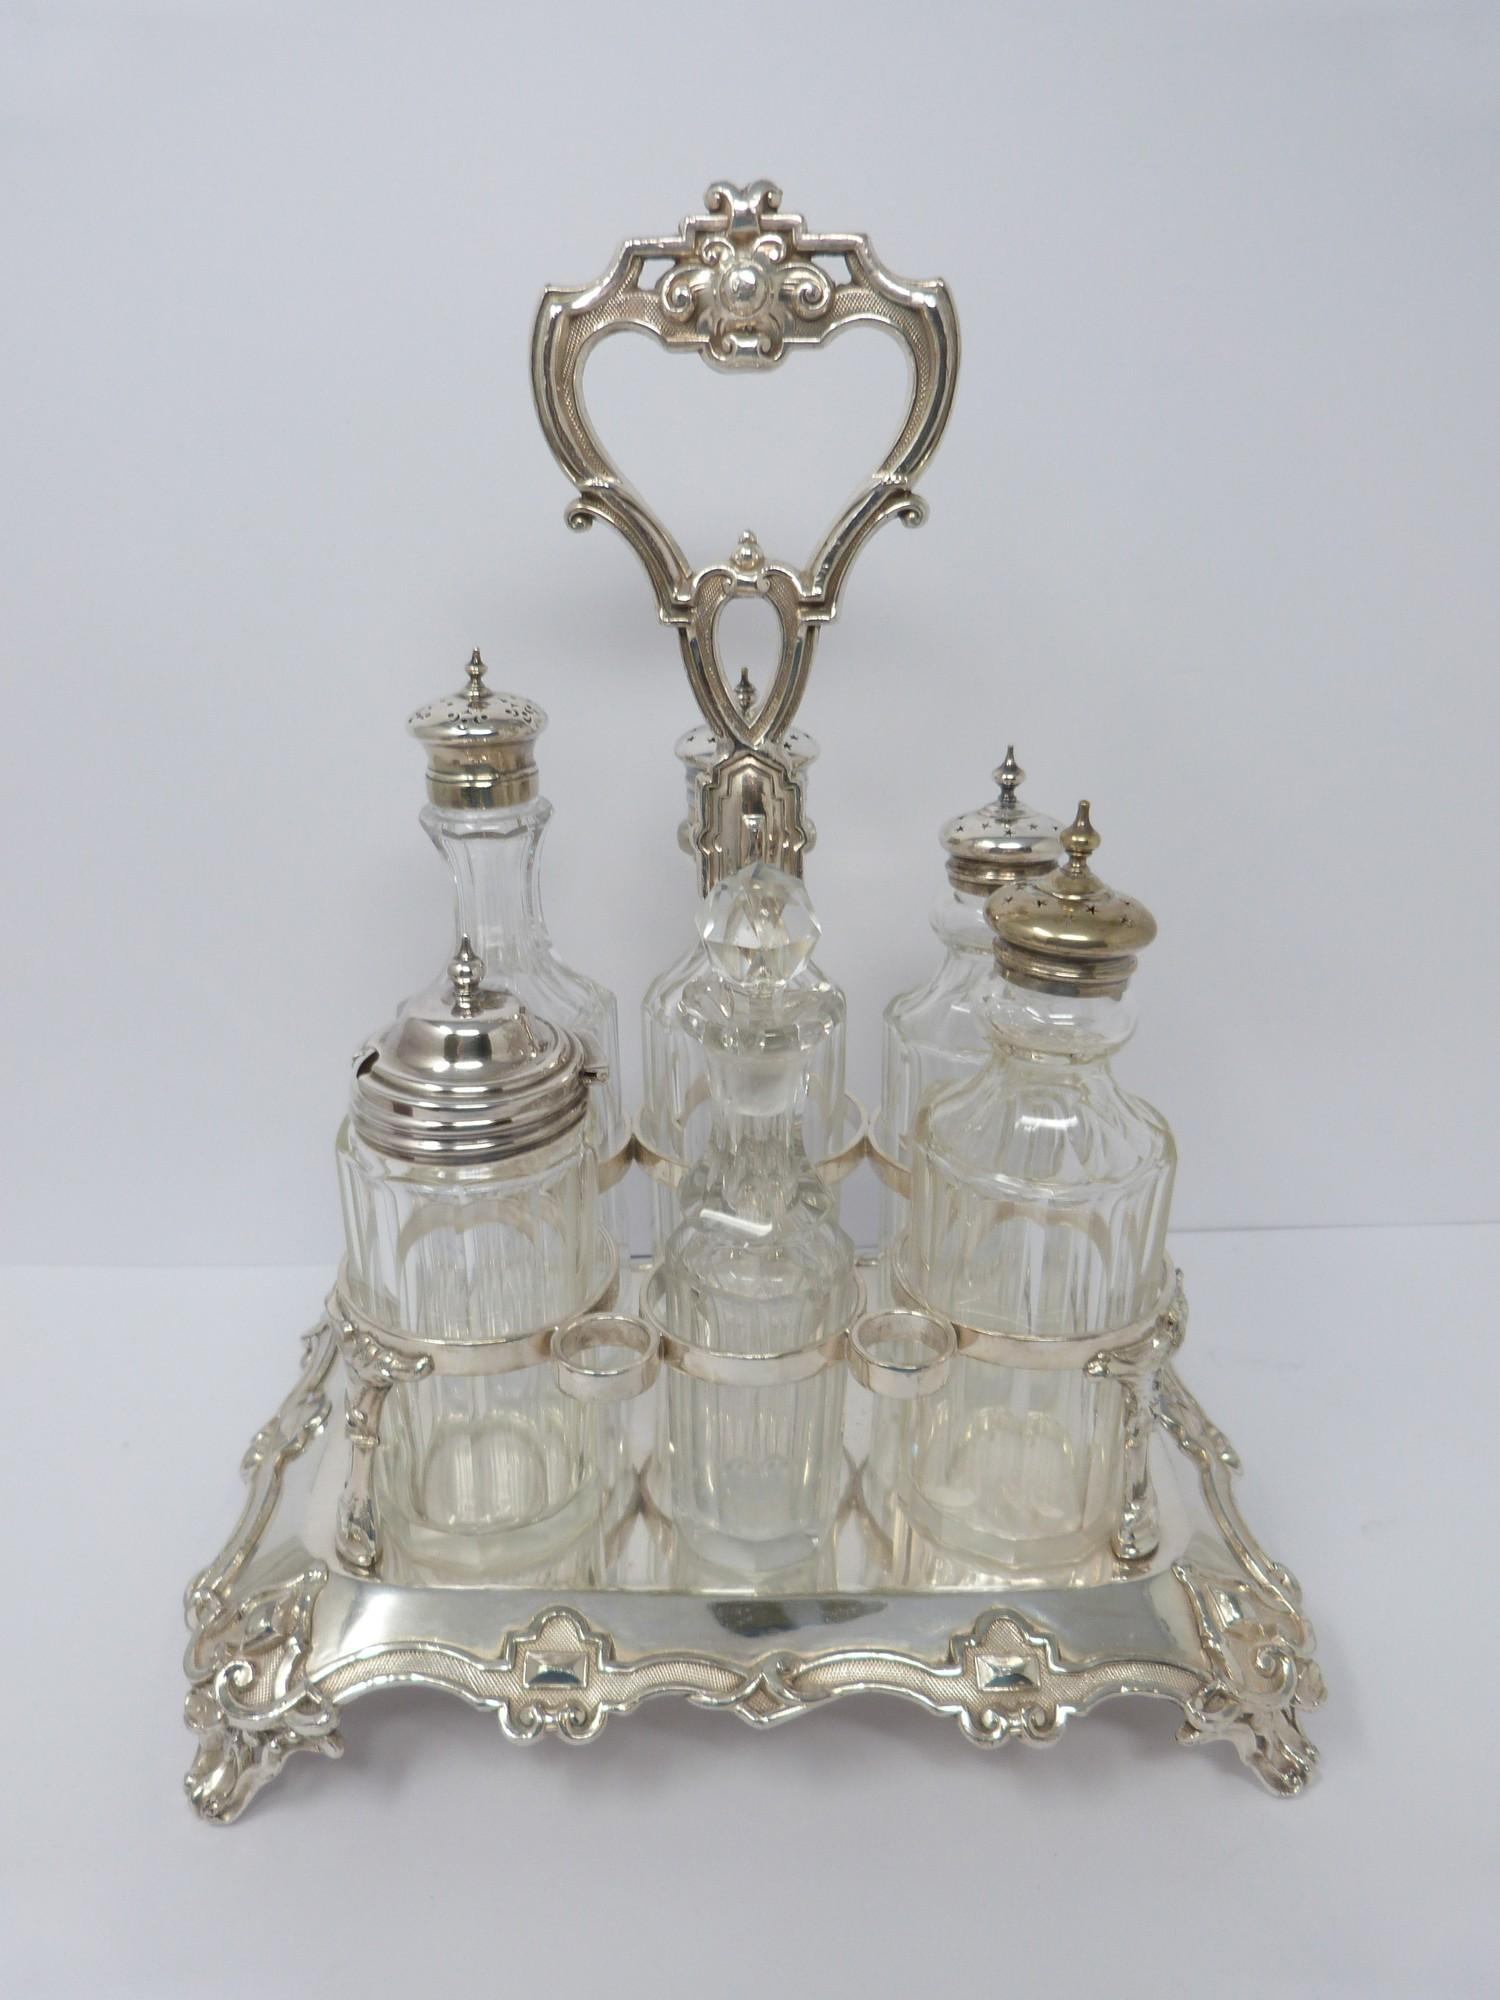 Victorian heavy Sheffield plate and silver plate cut glass cruet set, highly decorated borders, - Image 3 of 7